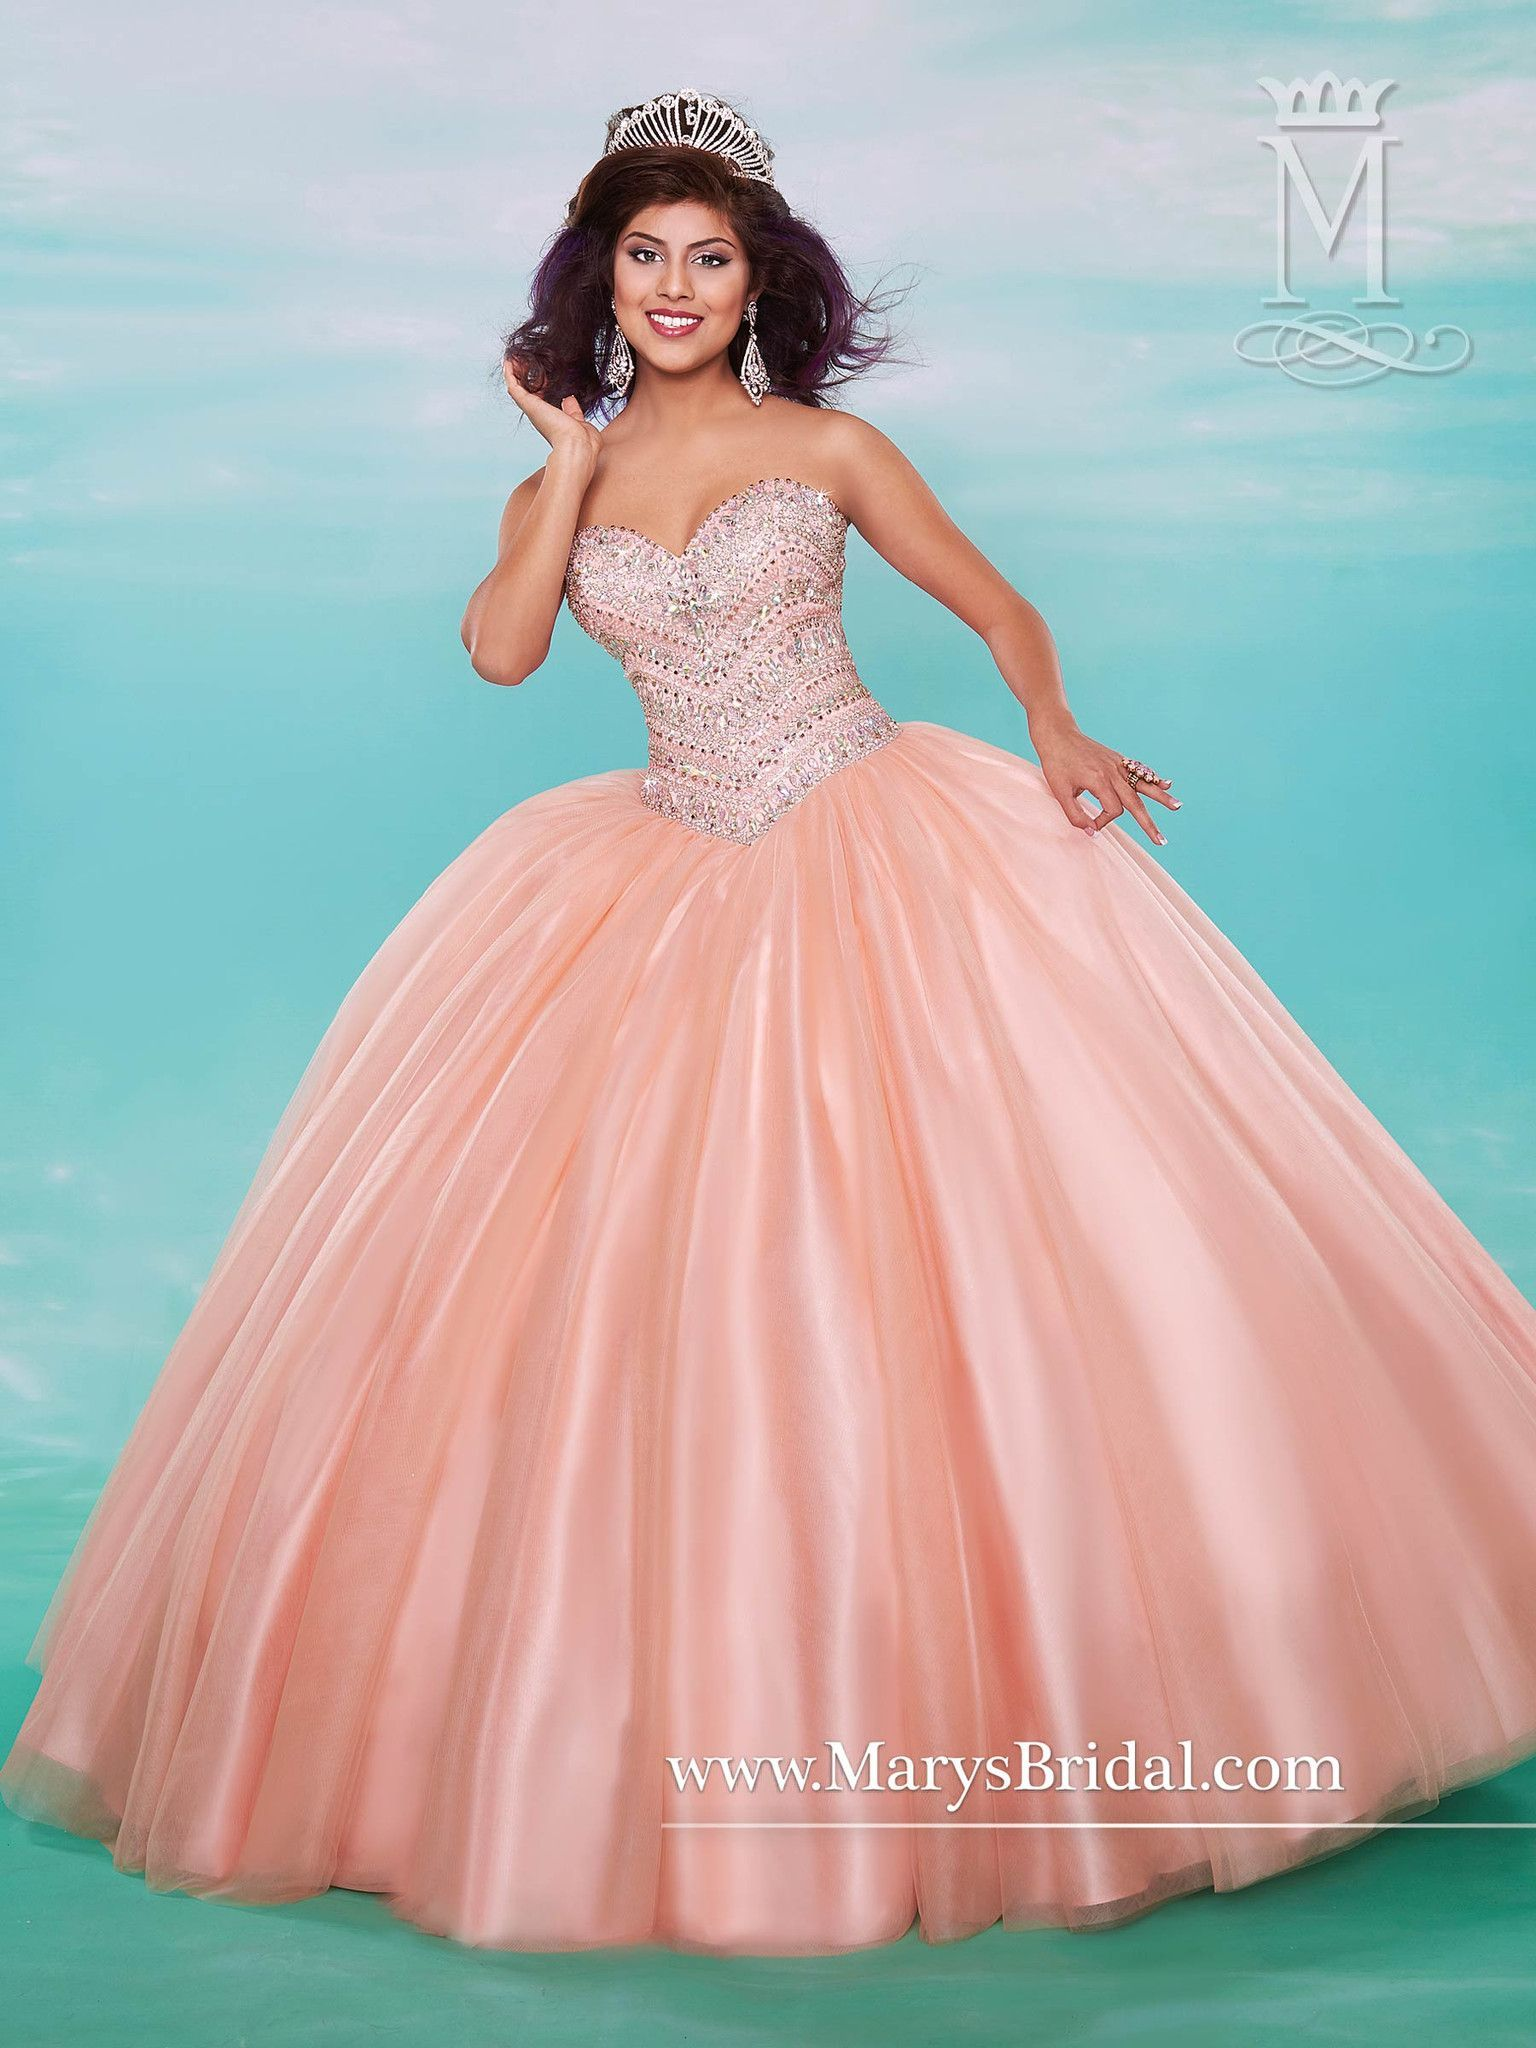 Mary\'s Bridal Beloving Collection Quinceanera Dress Style 4628 ...